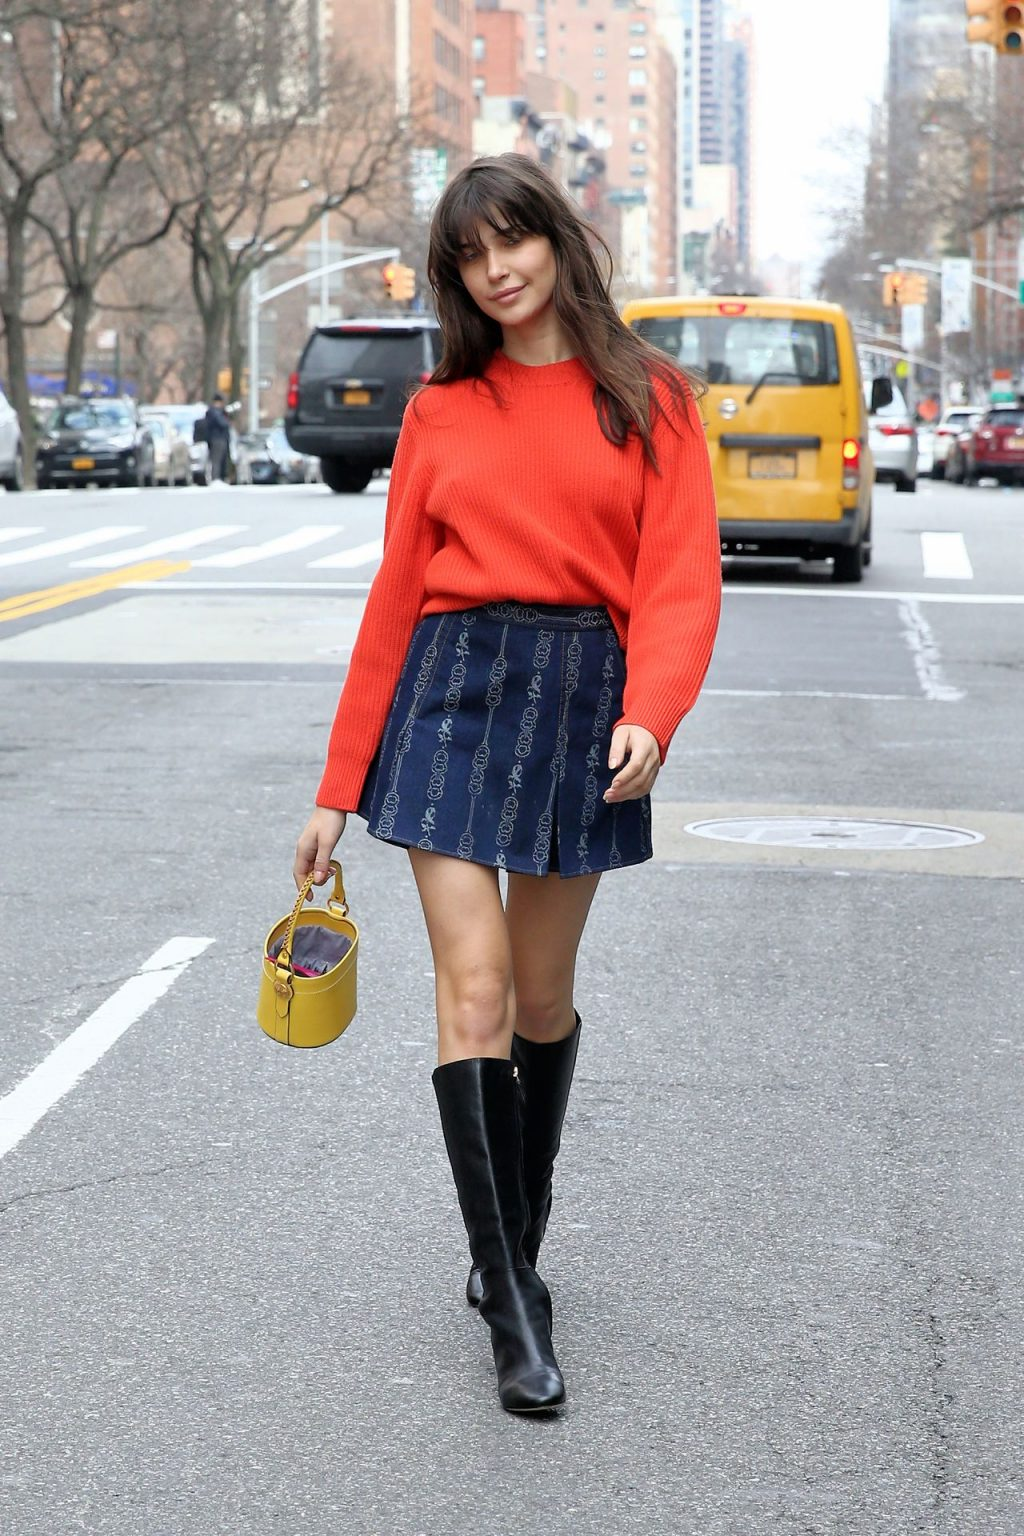 Charlotte D'Alessio - Possing in New York City